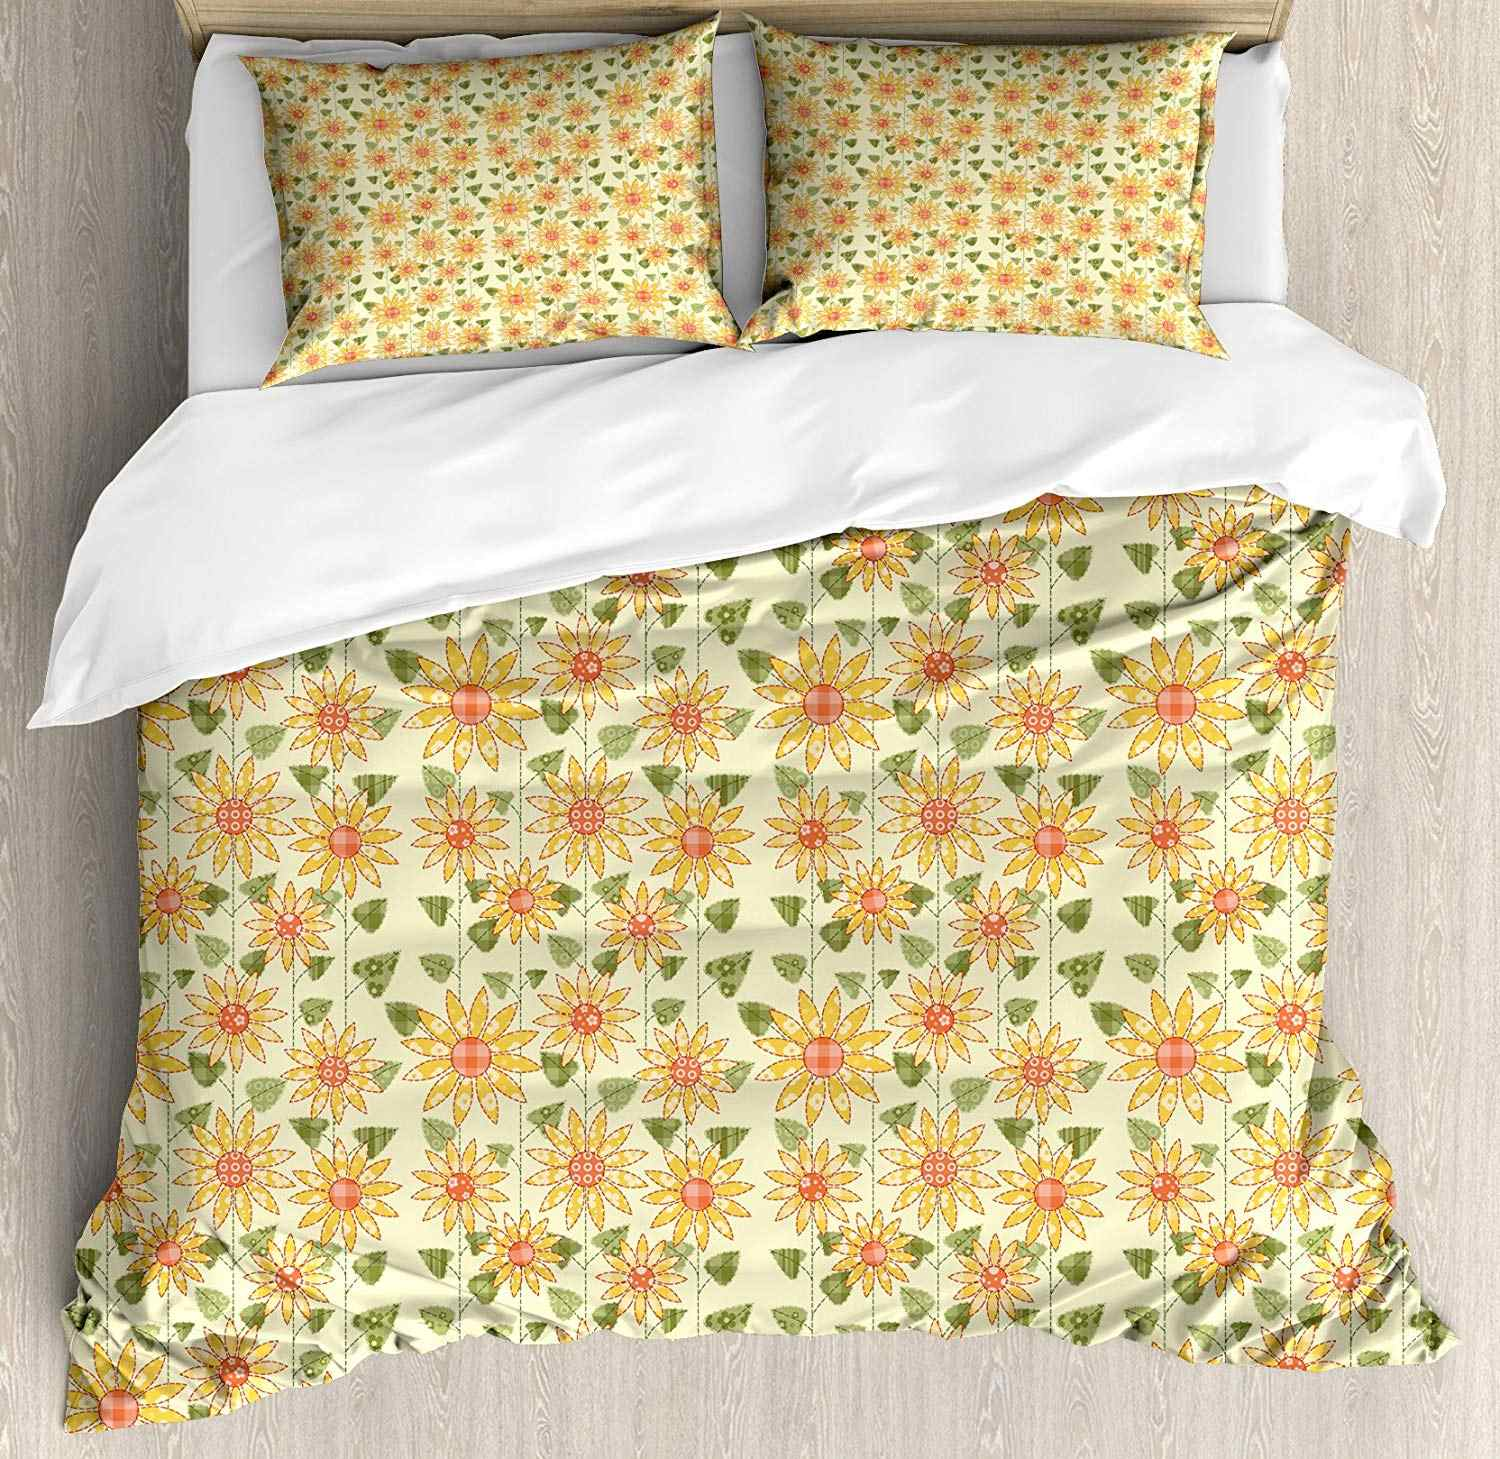 Sunflower Duvet Cover Set Floral Nature Pattern In Patchwork Style Rustic Country Design Decorative 3 Piece Bedding Set Duvet Cover Aliexpress